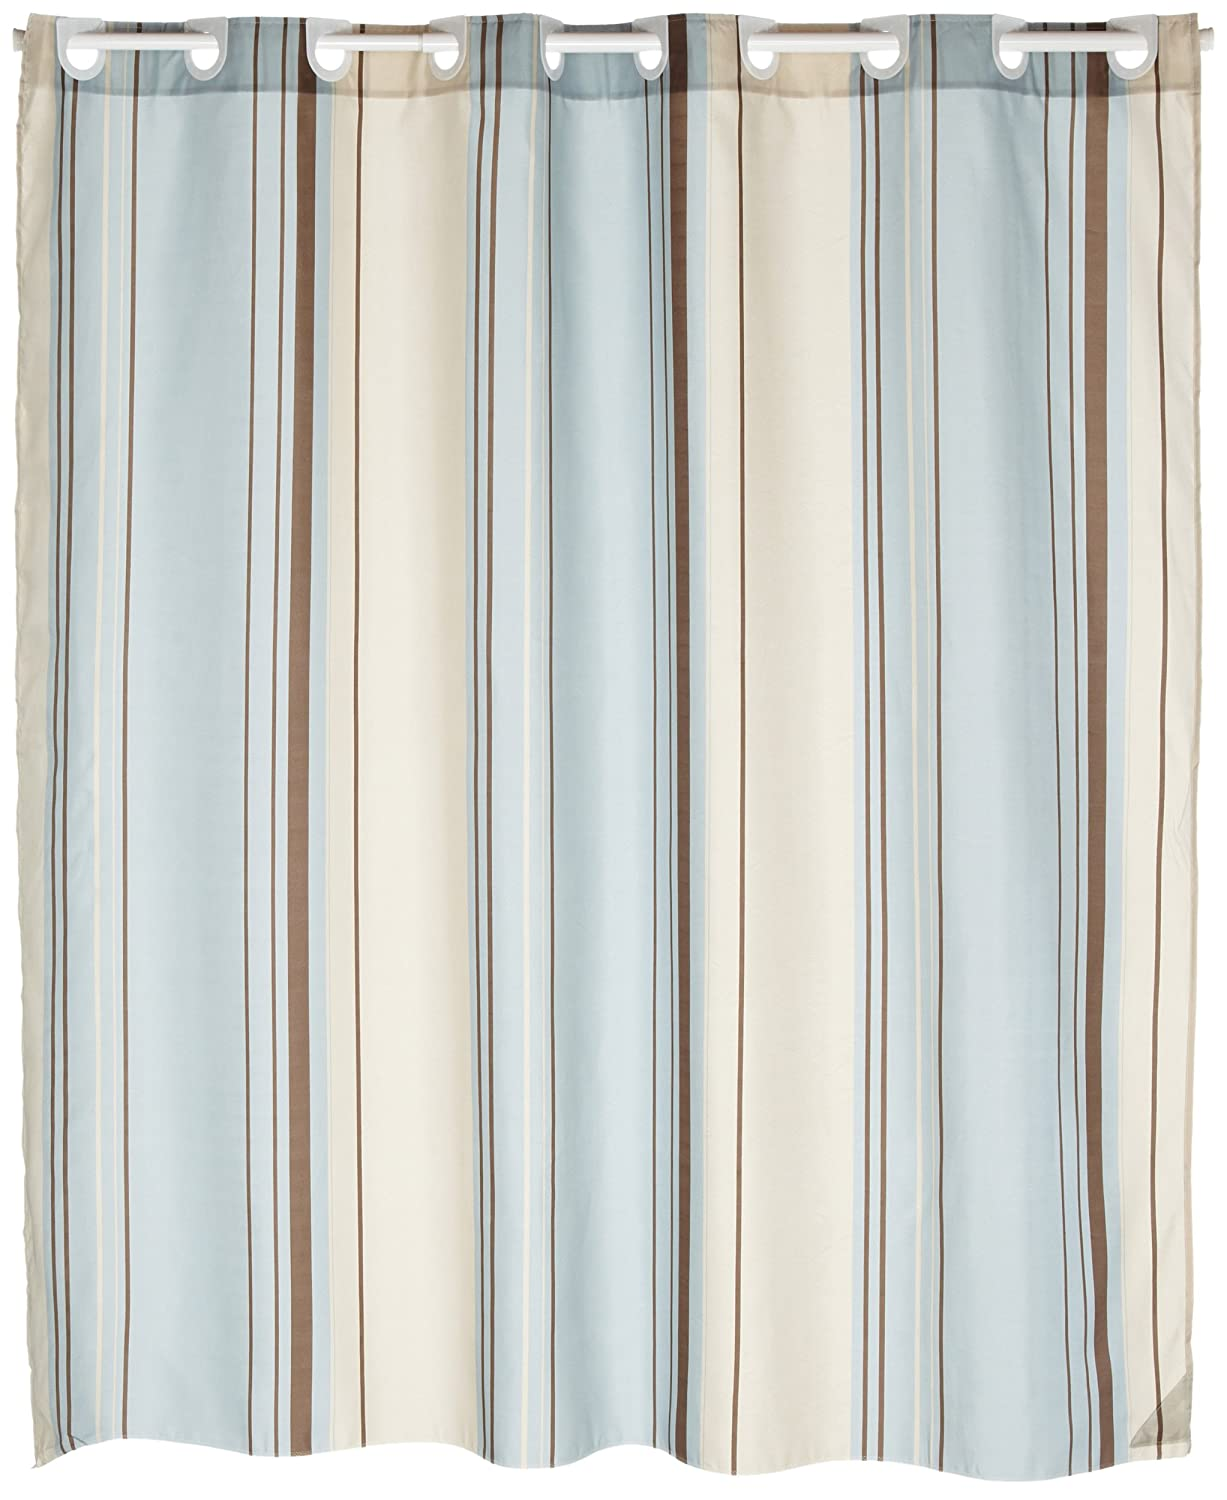 curtains curtain mainstays stripe striped ombre shower c fabric kp